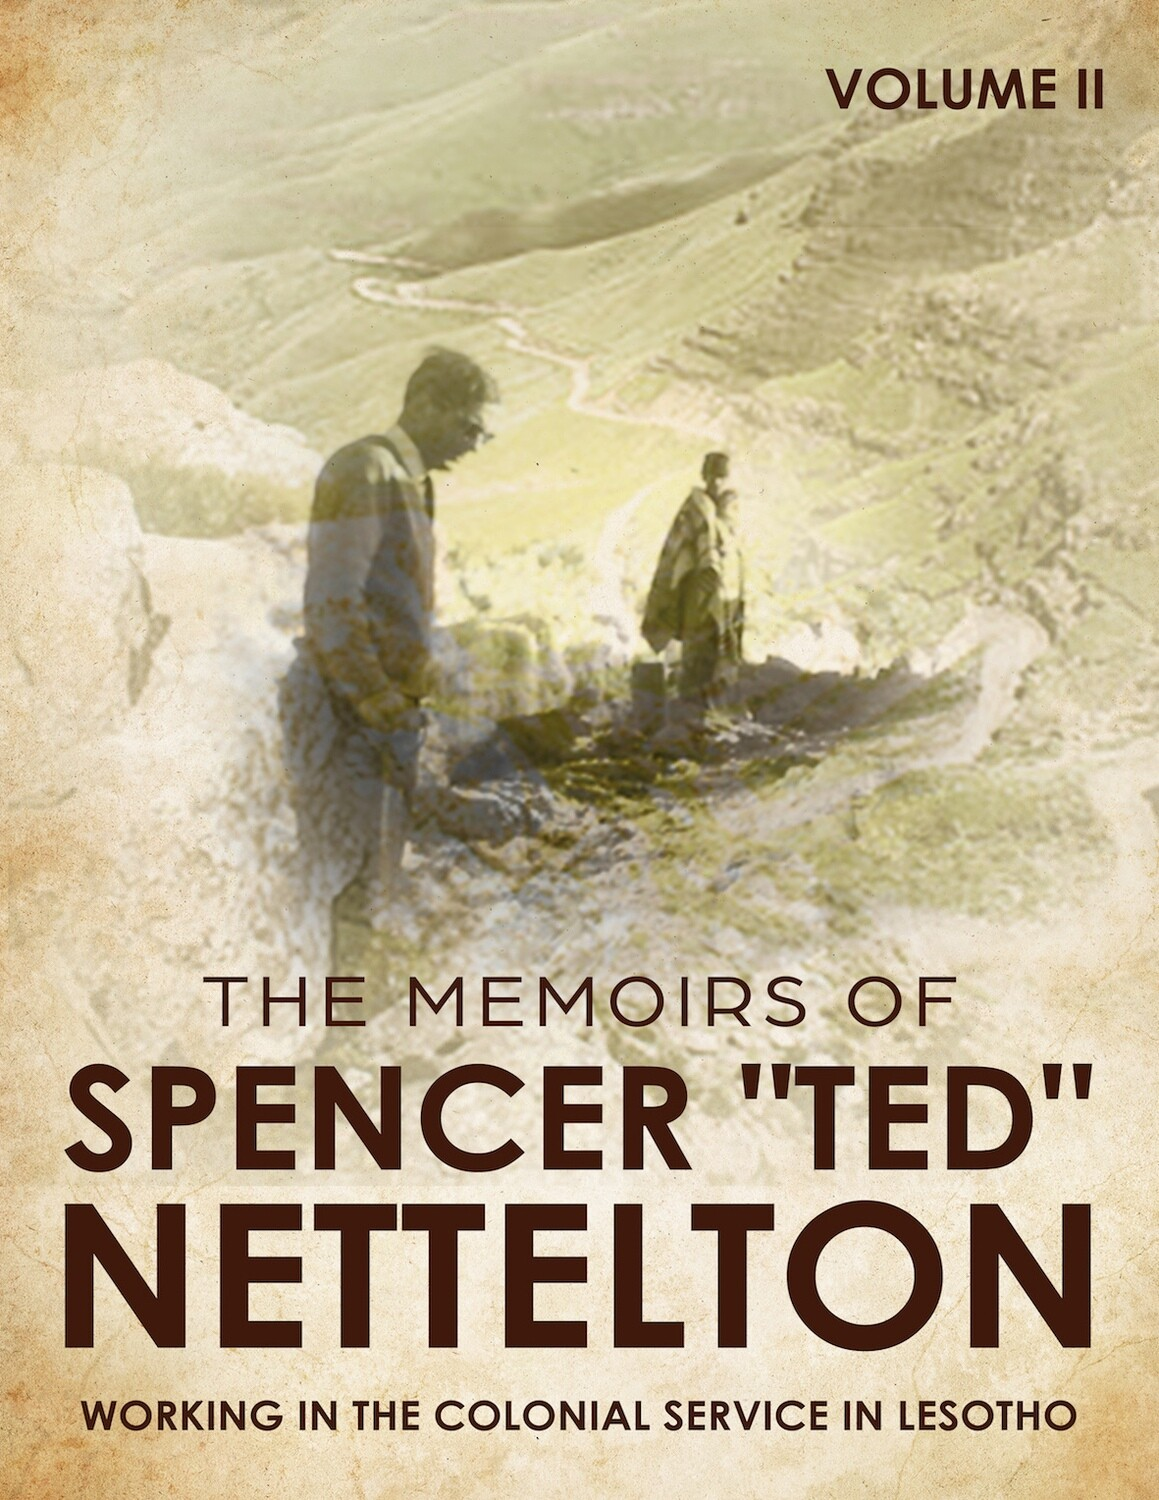 Working in the Colonial Service in Lesotho - The Memoirs of Spencer